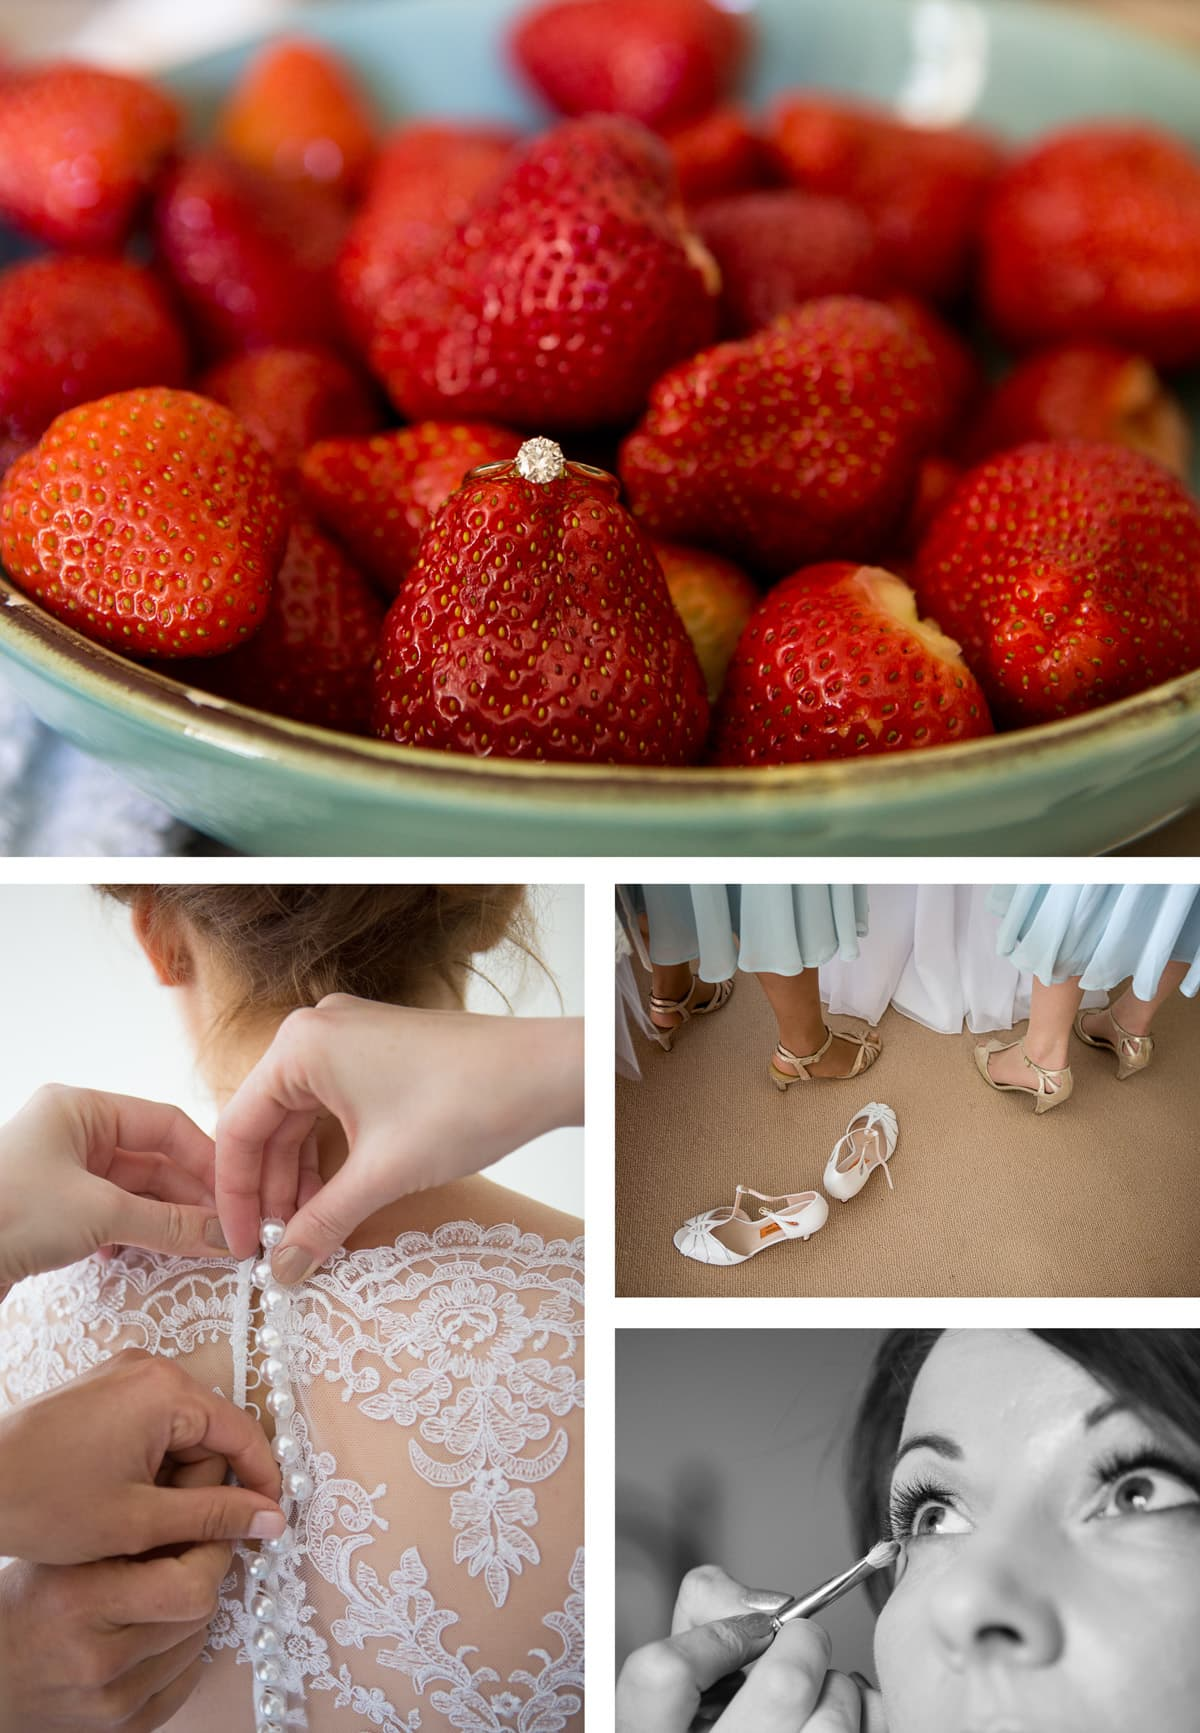 Collage of images from left: bride's dress is done up; diamond ring sits in a bowl of strawberries; bridesmaids dresses and shoes; bride gets her makeup done